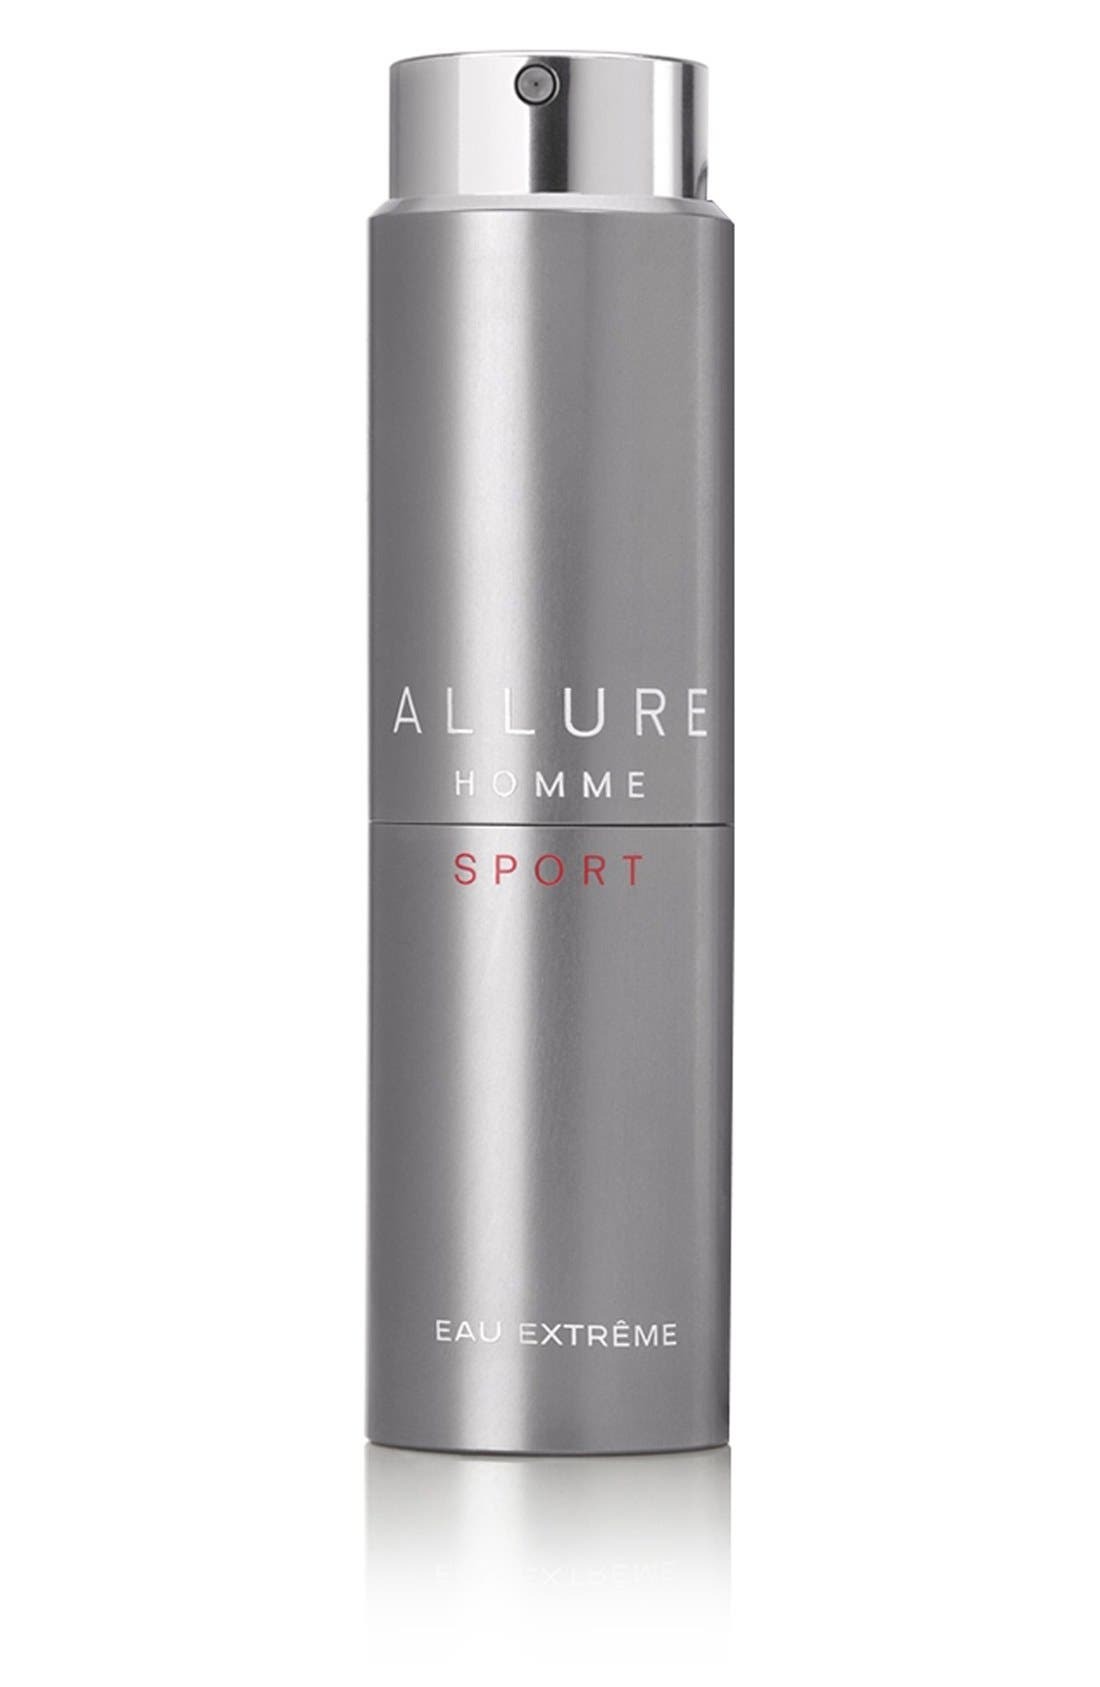 ALLURE HOMME SPORT Eau Extrême Refillable Travel Spray,                             Main thumbnail 1, color,                             NO COLOR